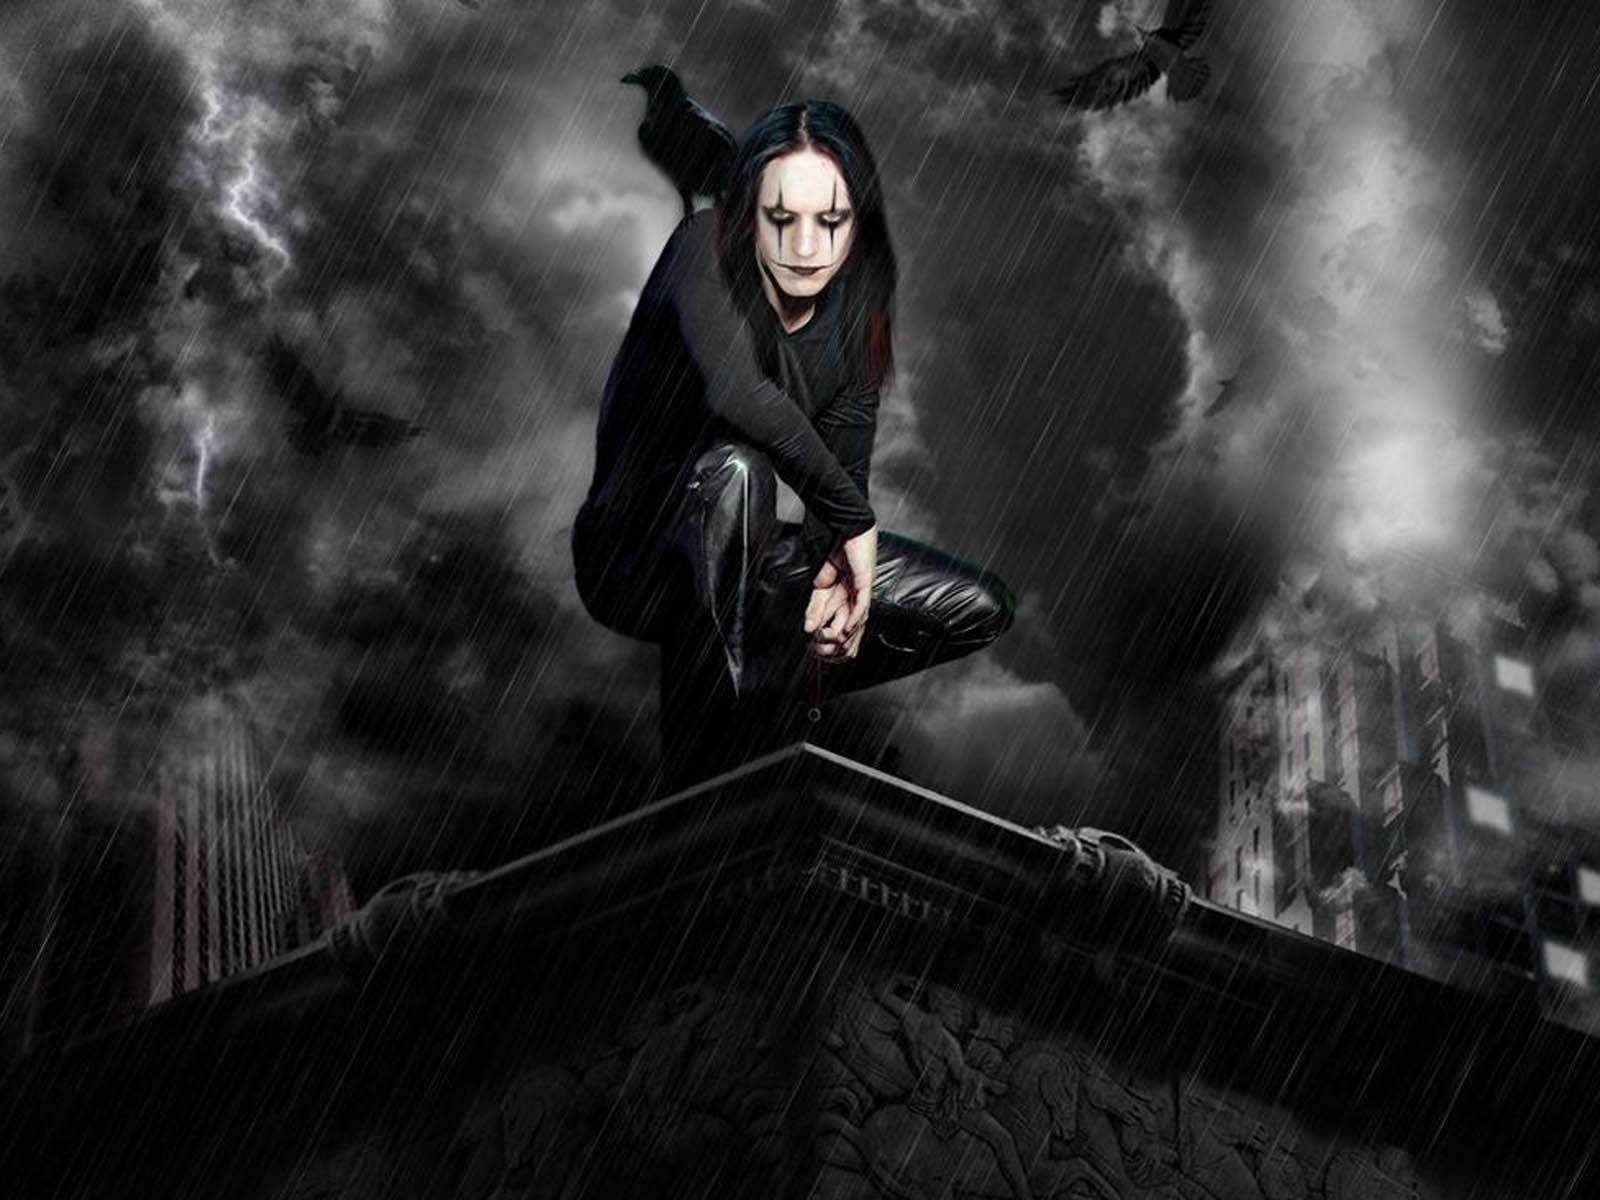 Beautiful Gothic Wallpapers: Wallpapers: Dark Gothic Wallpapers